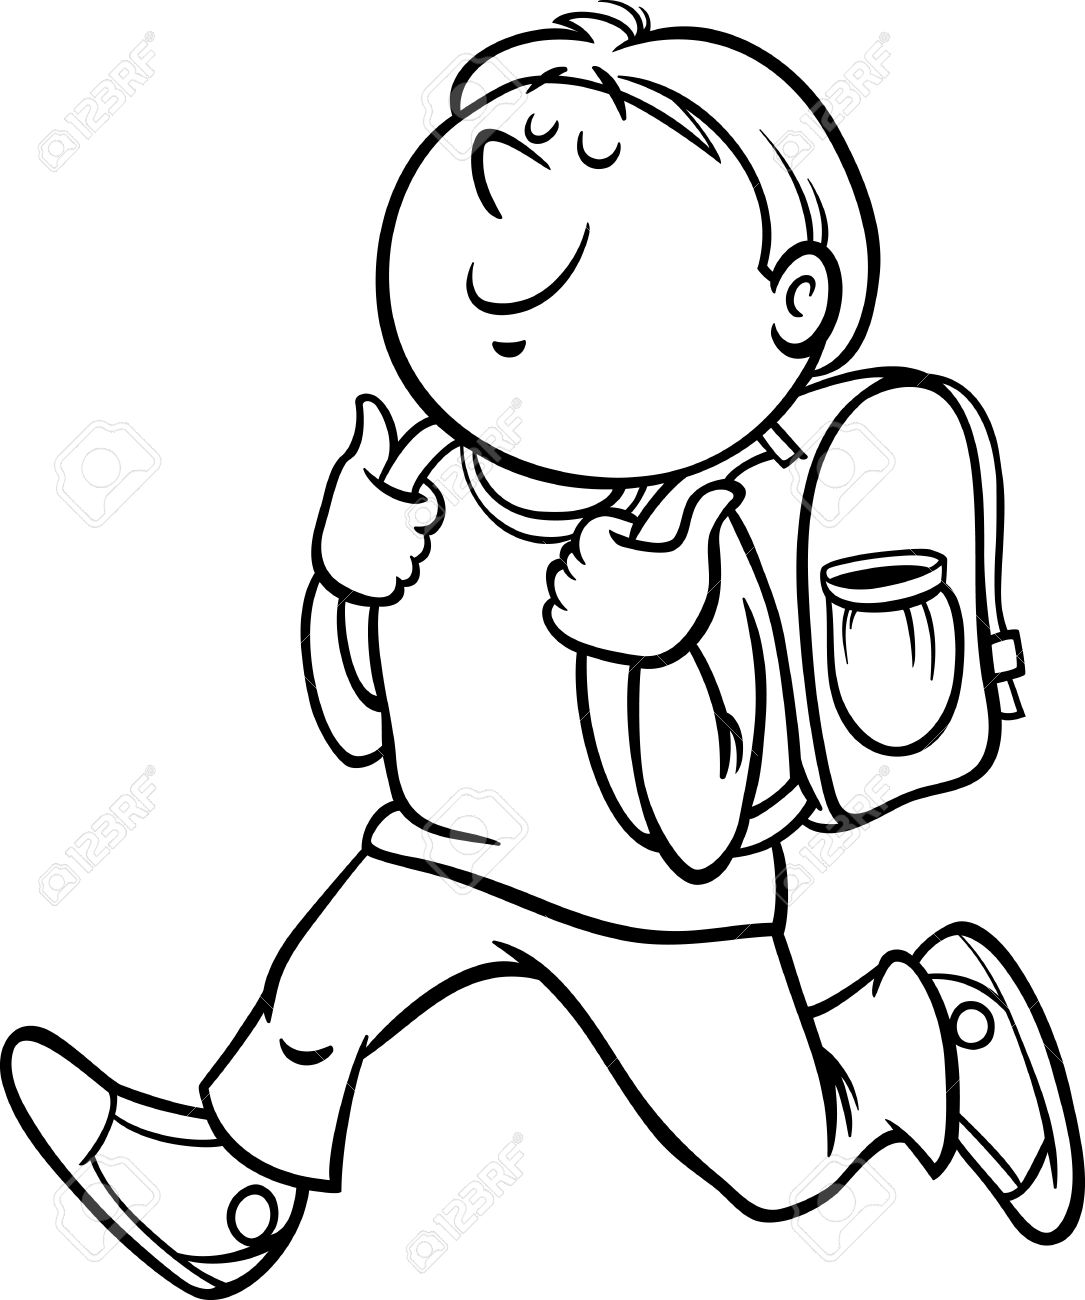 1085x1300 Boy Drawing Student For Free Download